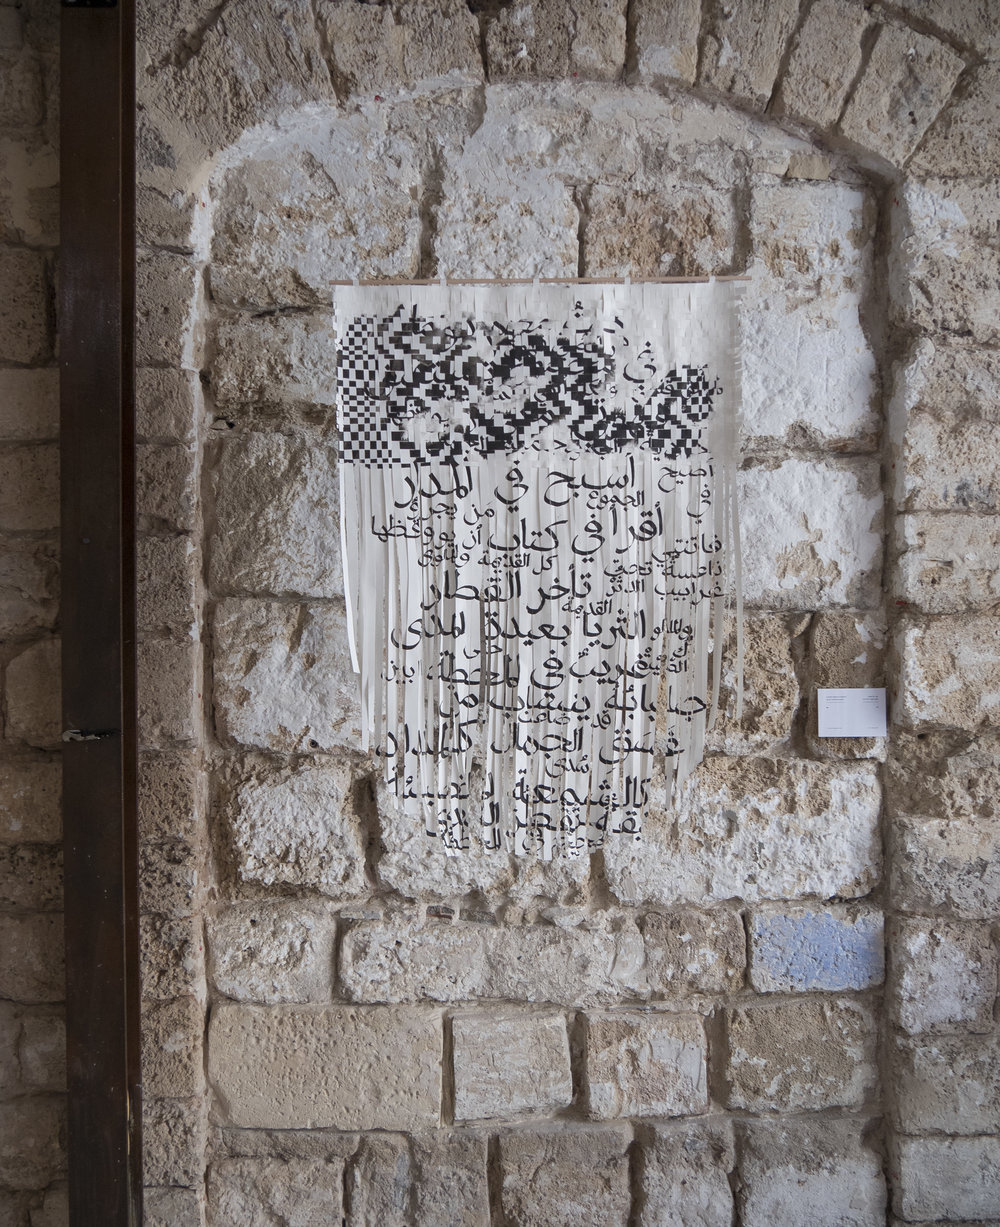 A poem about a station by an unknown poet | Ink on woven paper, 70x100 cm   *Source language: Arabic